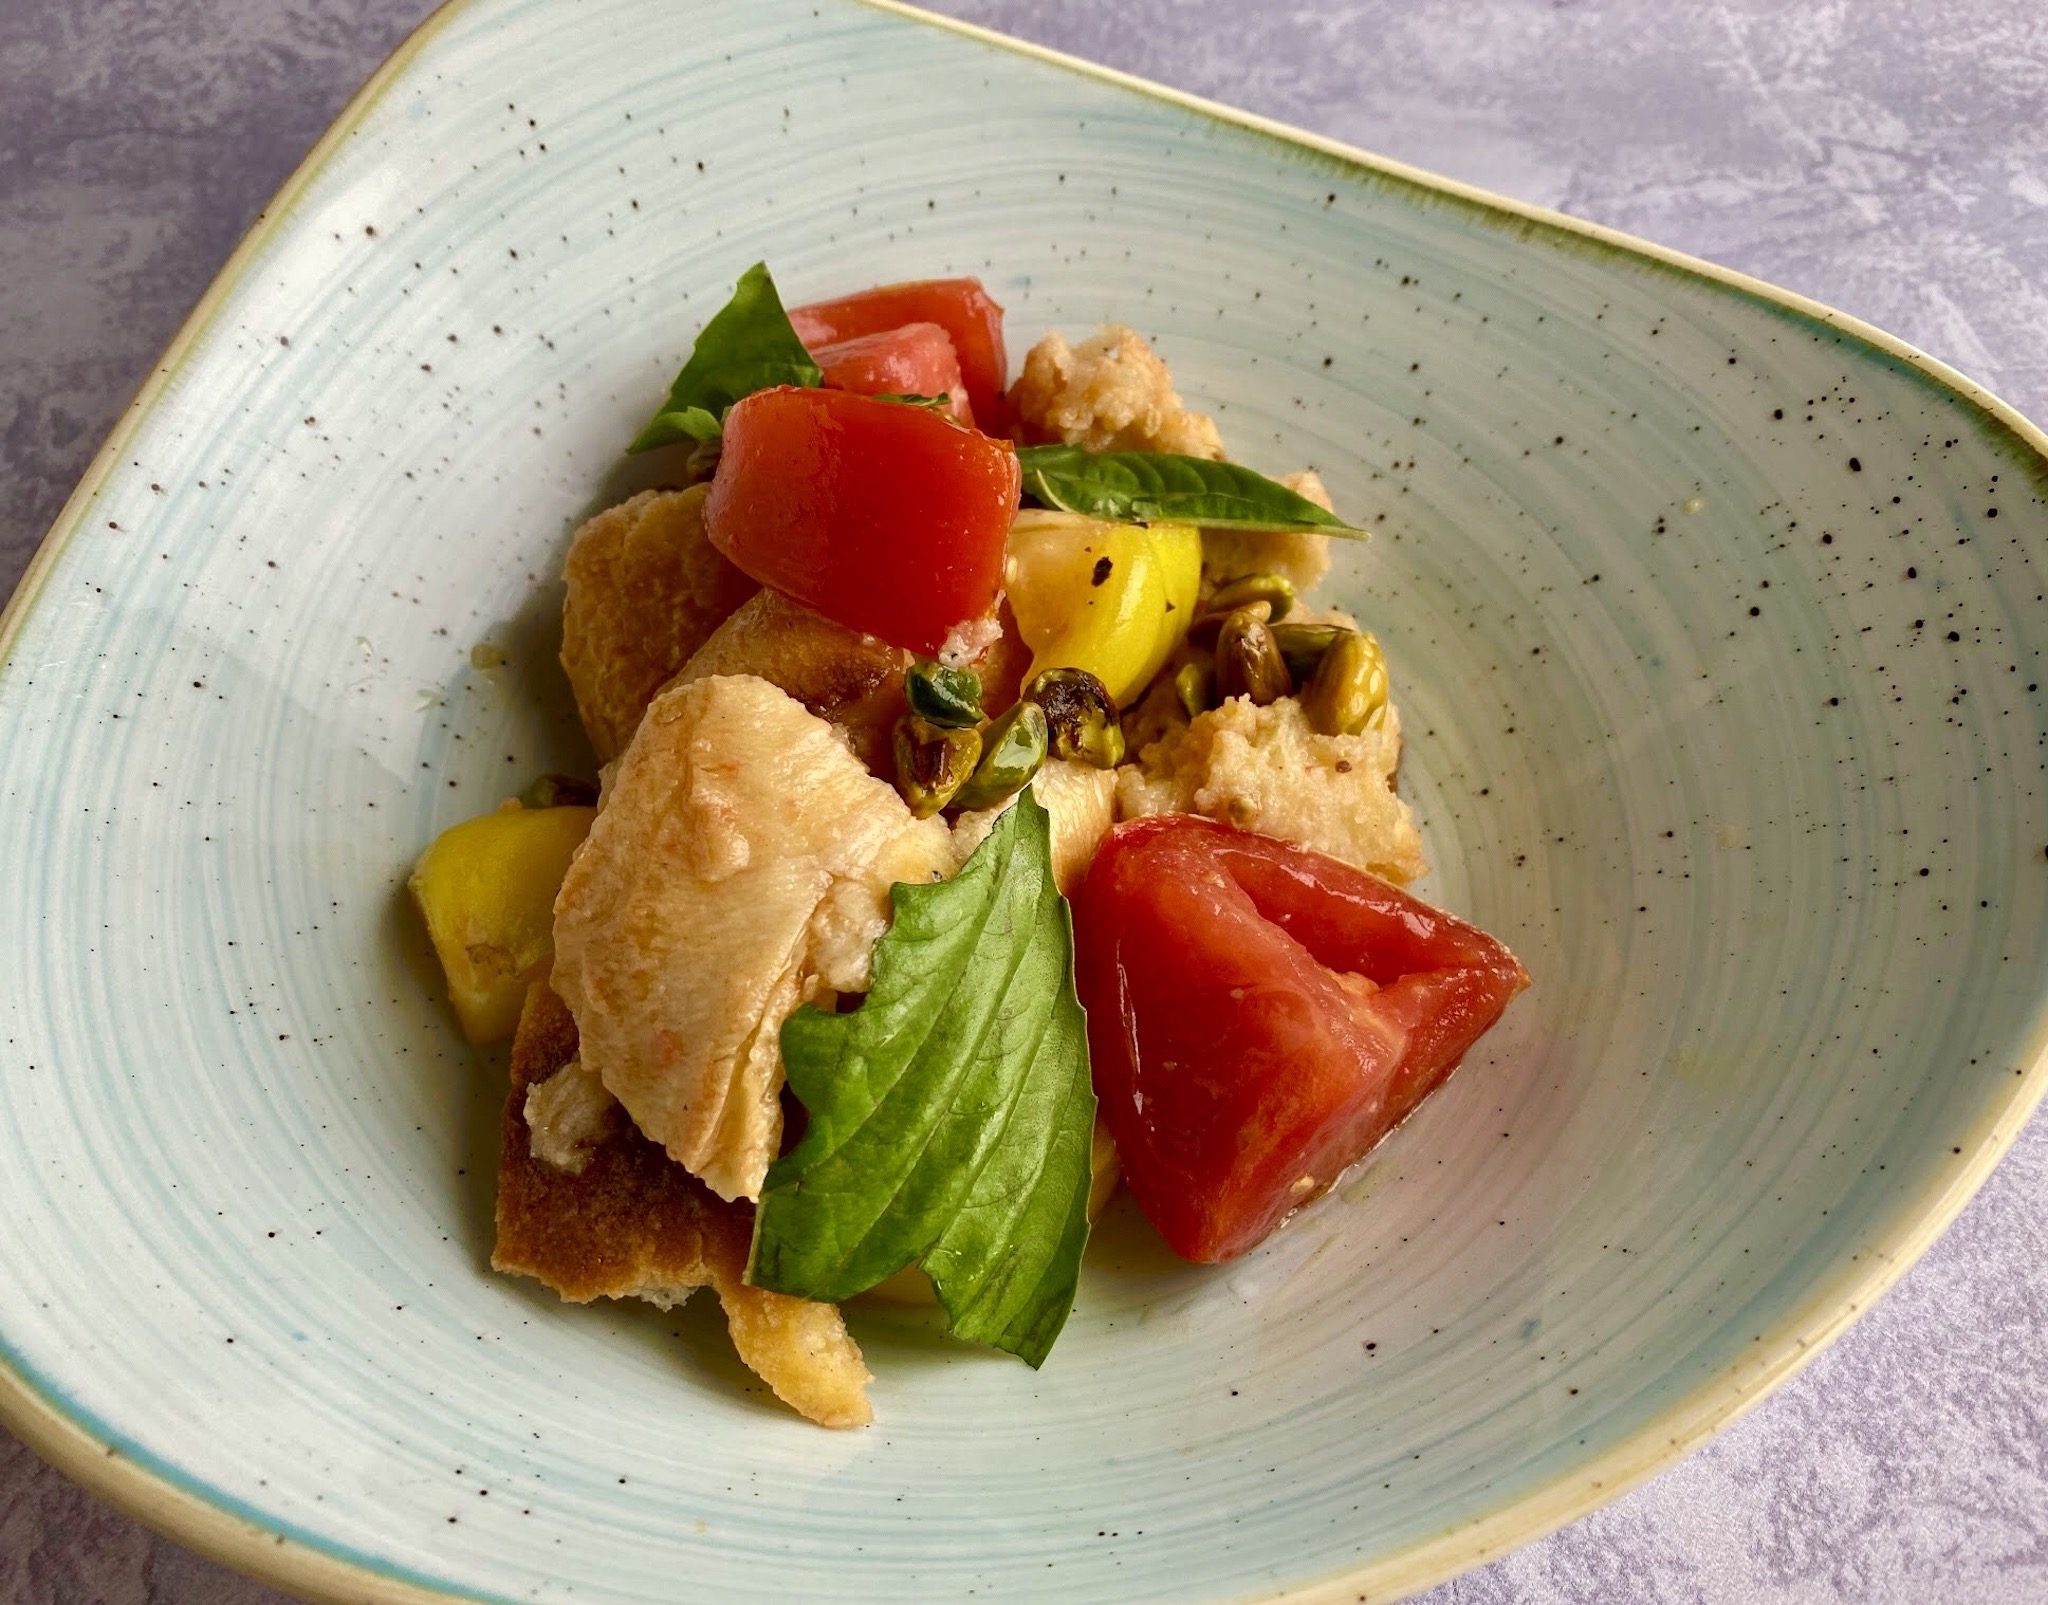 Two Graces - Heirloom Tomato Panzanella with fried pistachios and orange blossom water